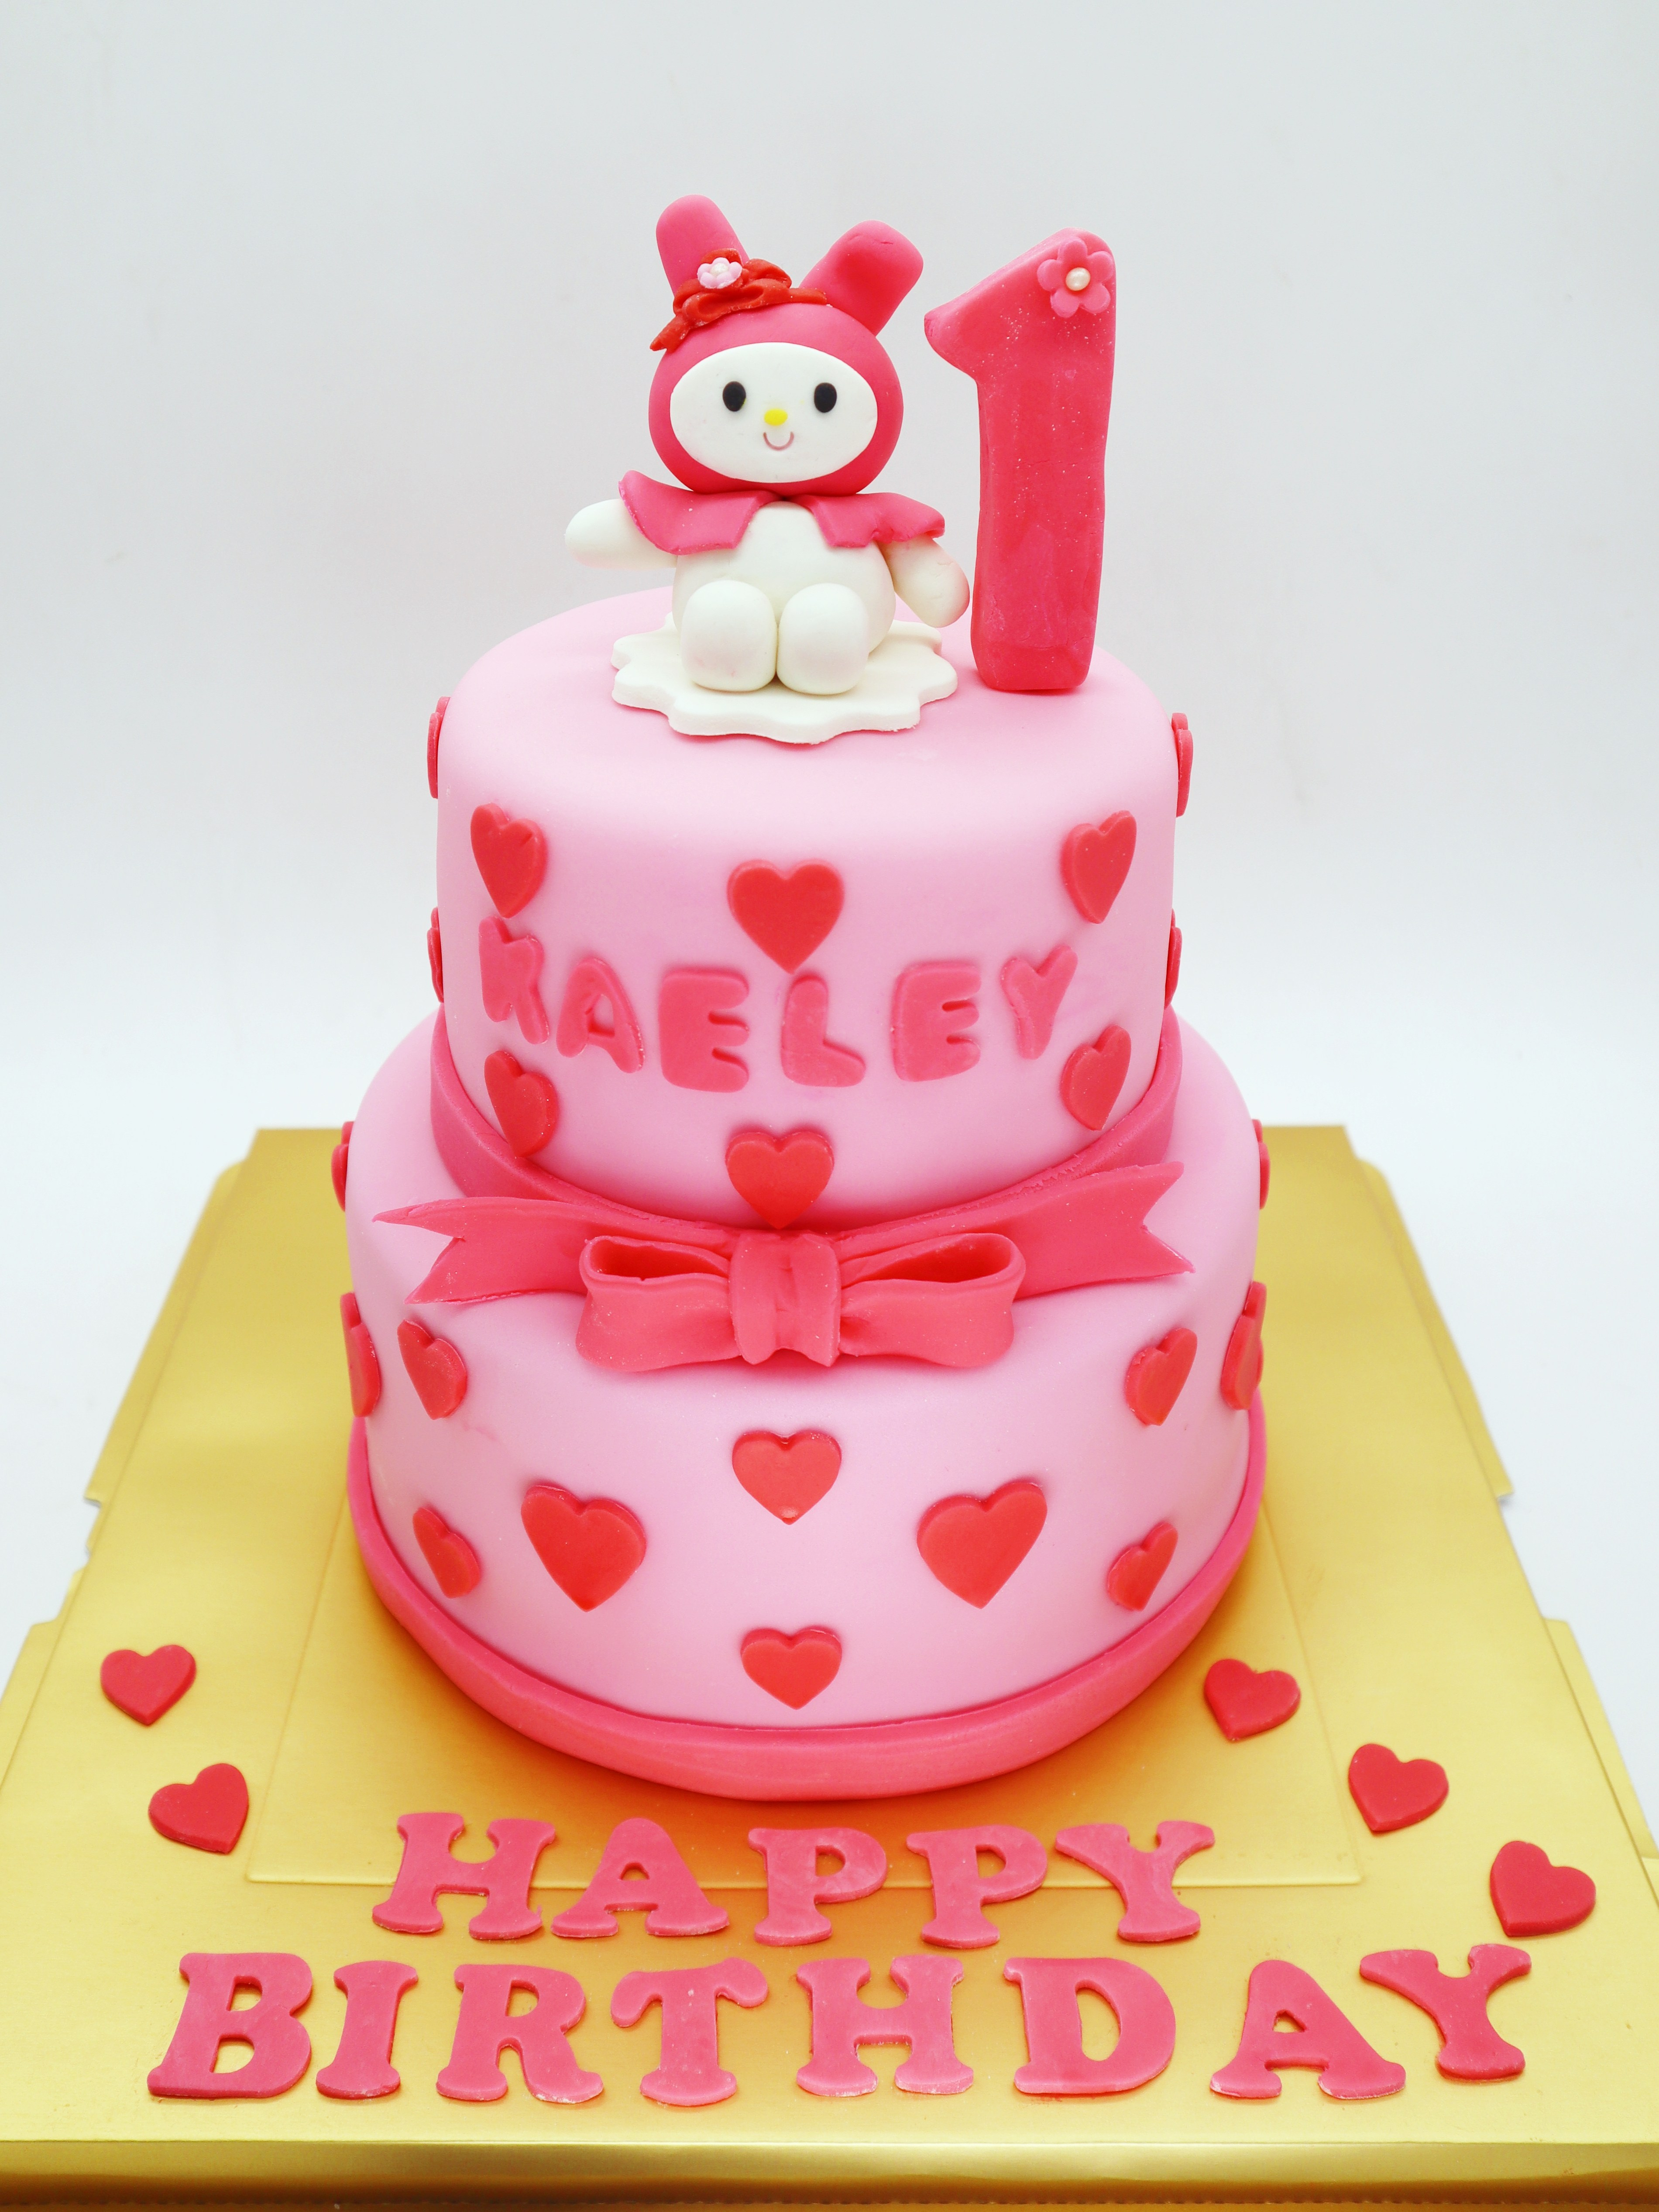 Baby 1St Birthday Cake 2 Tier Ba 1st Birthday Cake Pink Hearts Cake Le Petit Empire